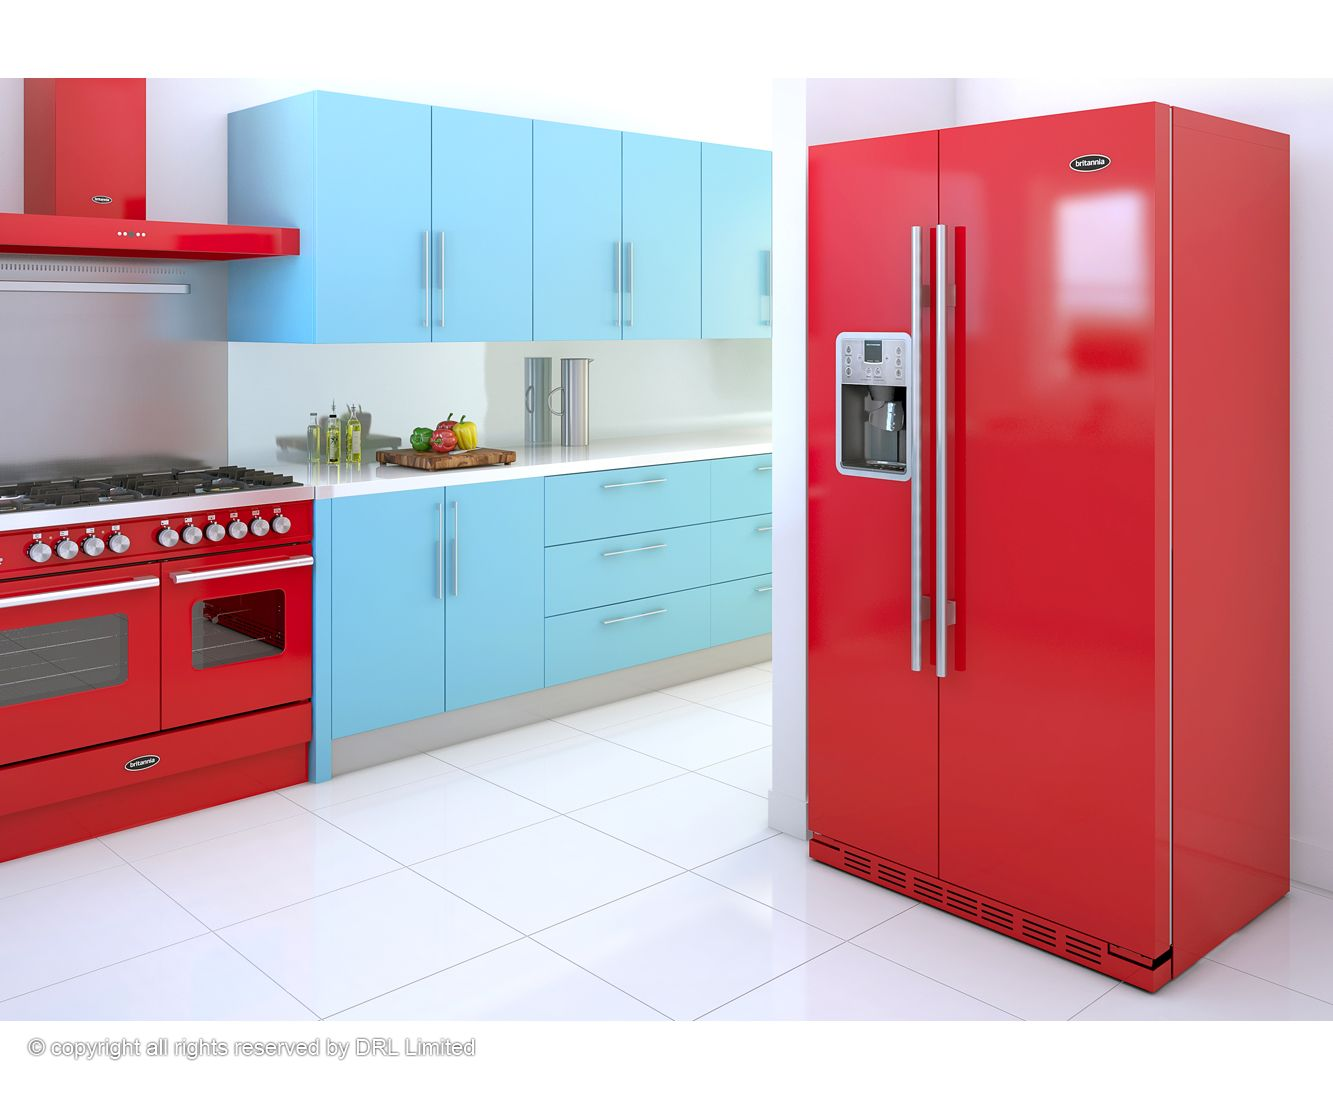 Pin by Cosmidis Coating on KITCHEN Ι bright colors Ι ΚΟΥΖΙΝΑ: έντονα ...